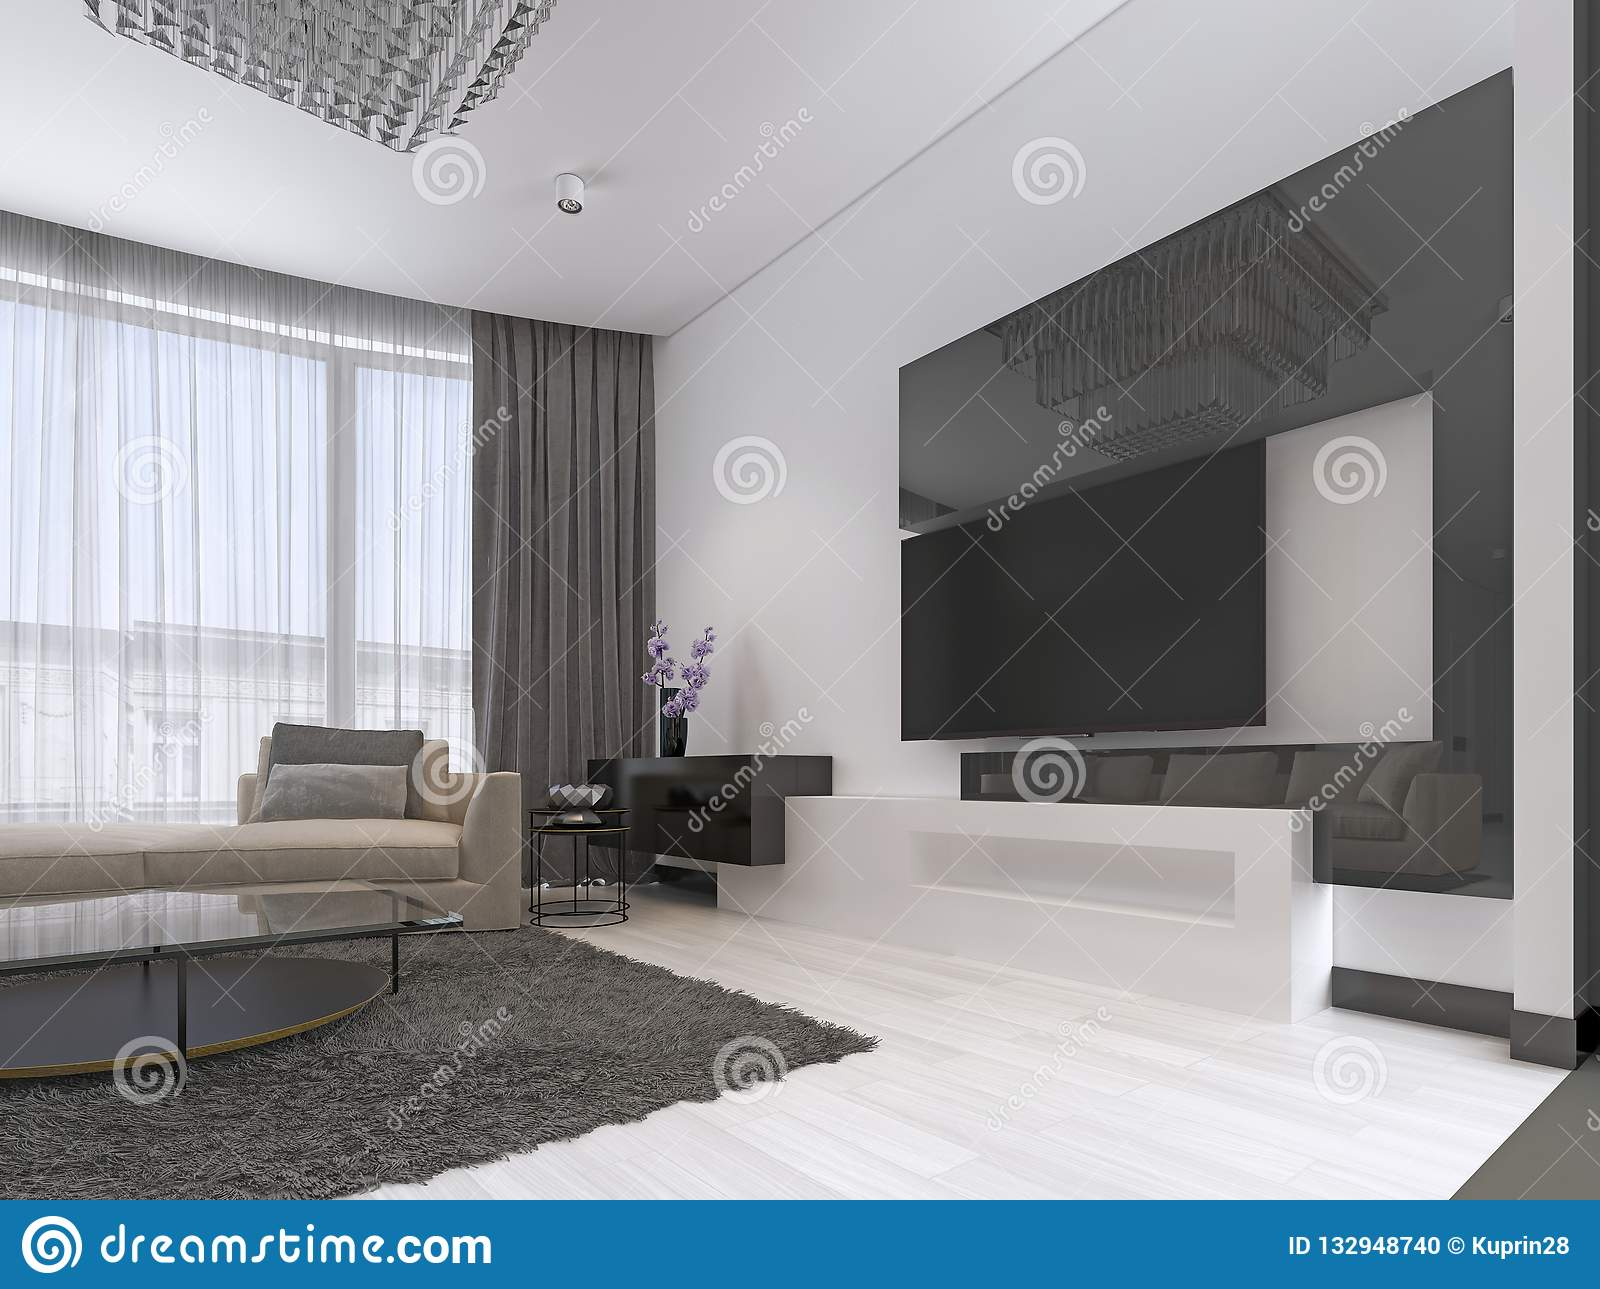 Interior design living room with a large corner sofa and a tv unit in contemporary